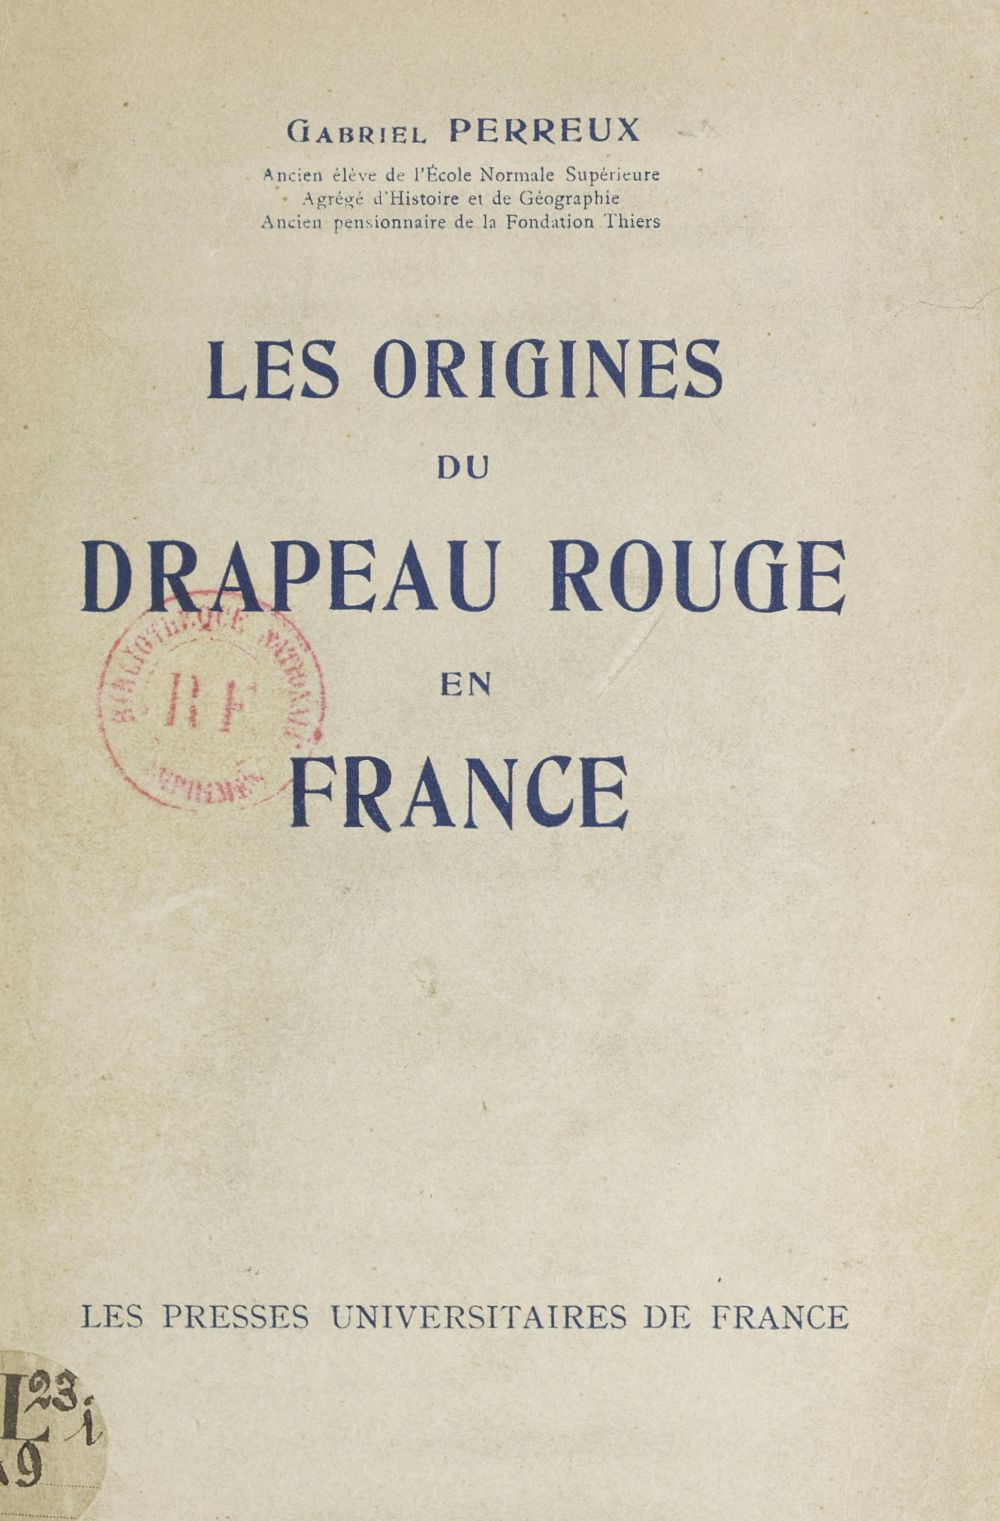 Les origines du drapeau rouge en France